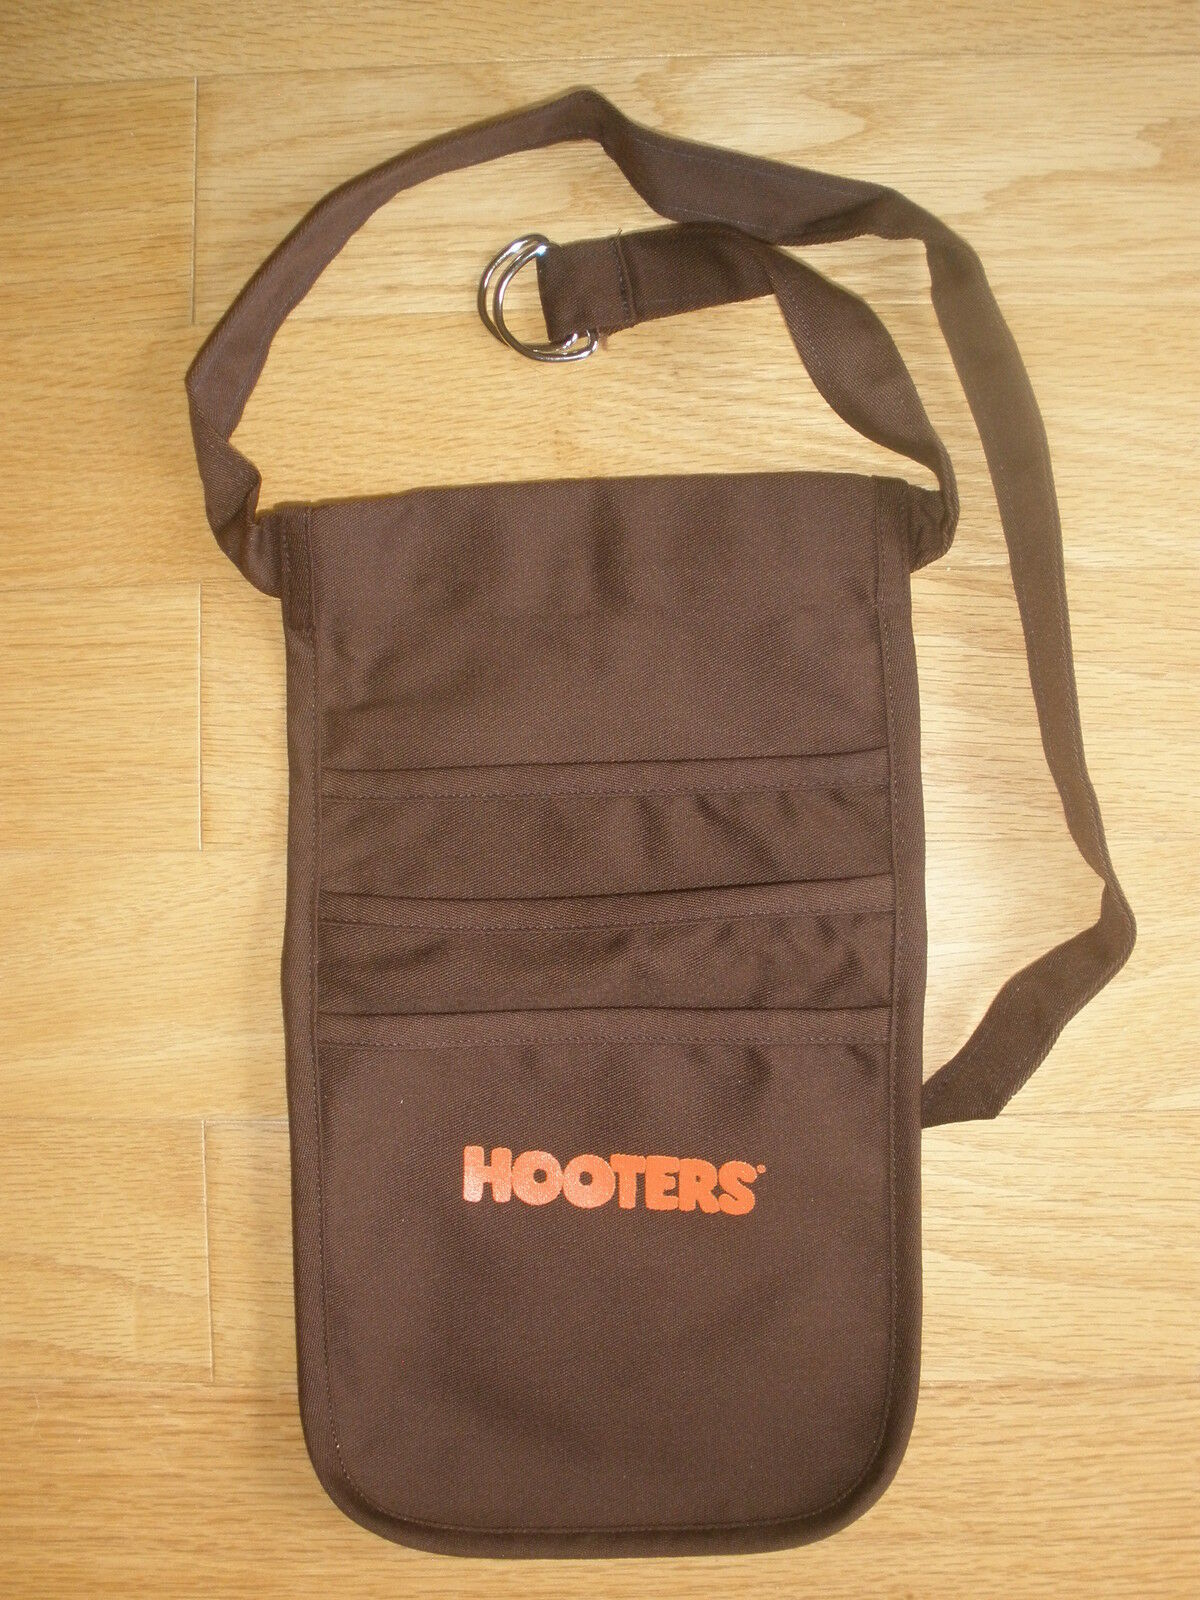 Authentic Hooters Uniform Brown Money Pouch Halloween Free Shipping